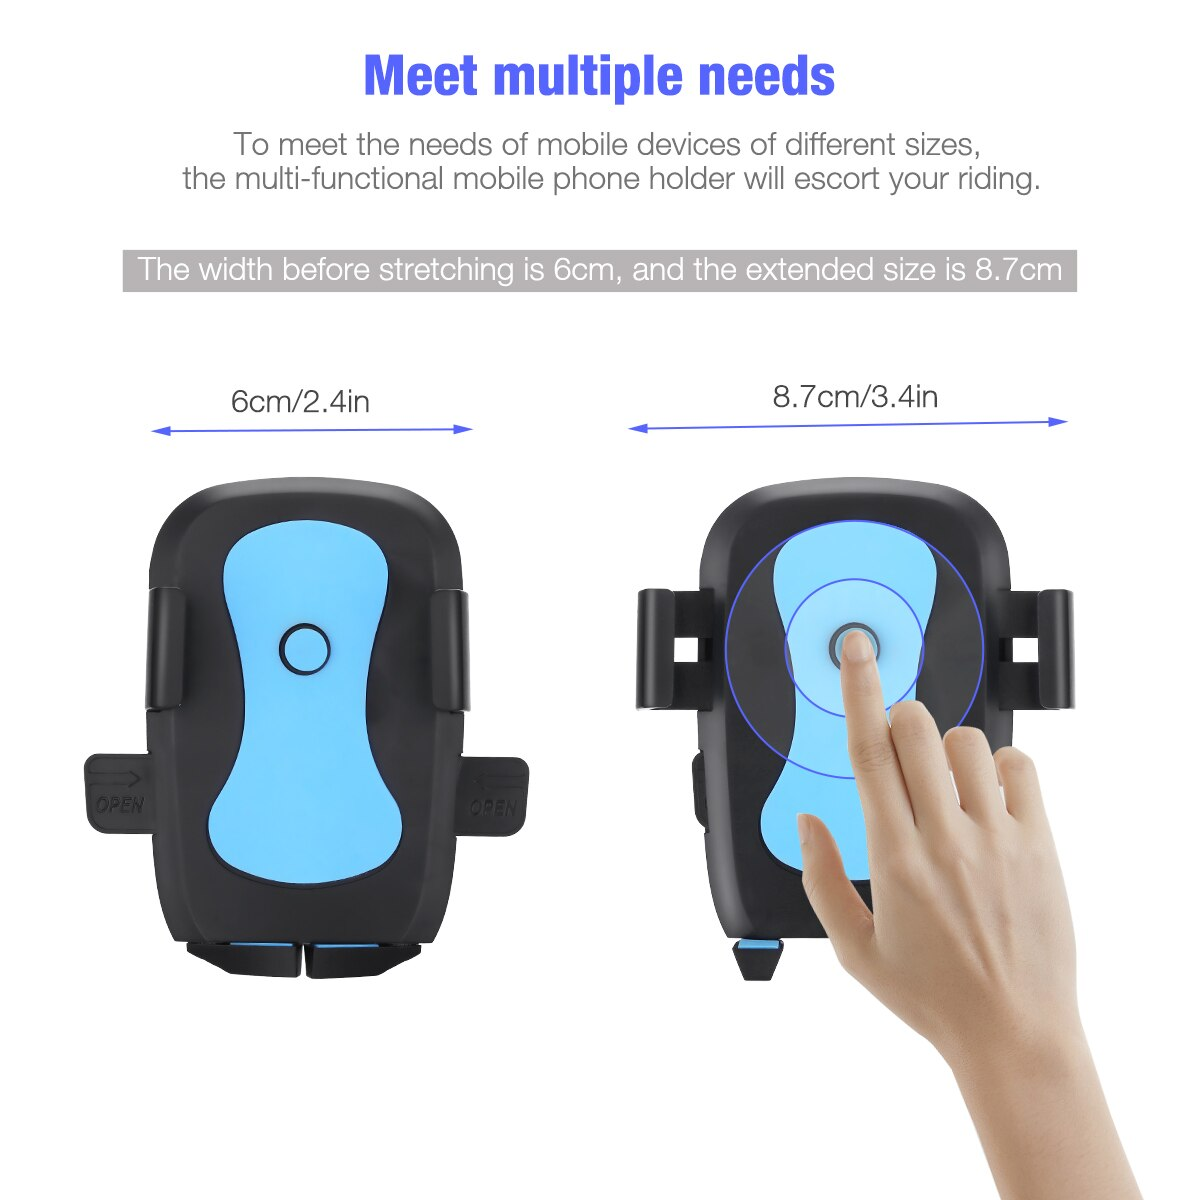 H878ae645e8c84ffeada5f01f5876feaas - 360 Degree Rotatable Car Phone Holder For 2.4 to 3.4inch Phone Mount Stand in Car Bracket For Poco x3 pro iPhone Xiaomi Samsung